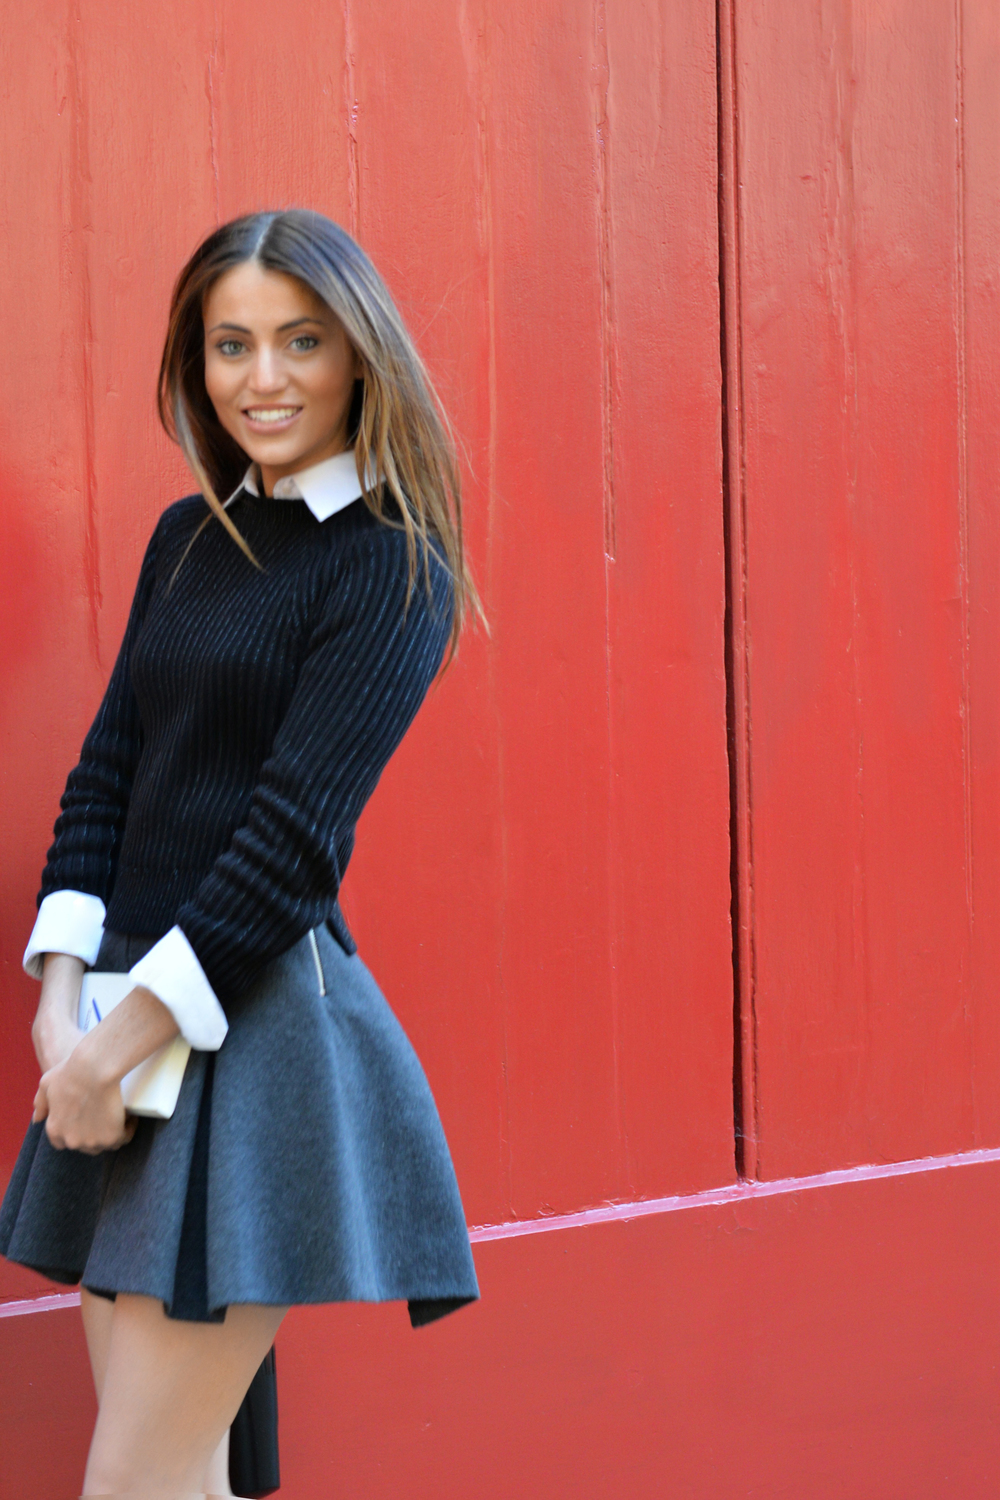 BACK TO SCHOOL: BLAIR WALDORF STYLE,UNIFORMS TRENDS BY MAUREEN SOPHIE KRAGT BLOGGER FROM THEVANILLAWOODS. SKIRT &WHITE SHIRT BY ZARA, SNEAKERS BY JIMMY CHOO photo (10)